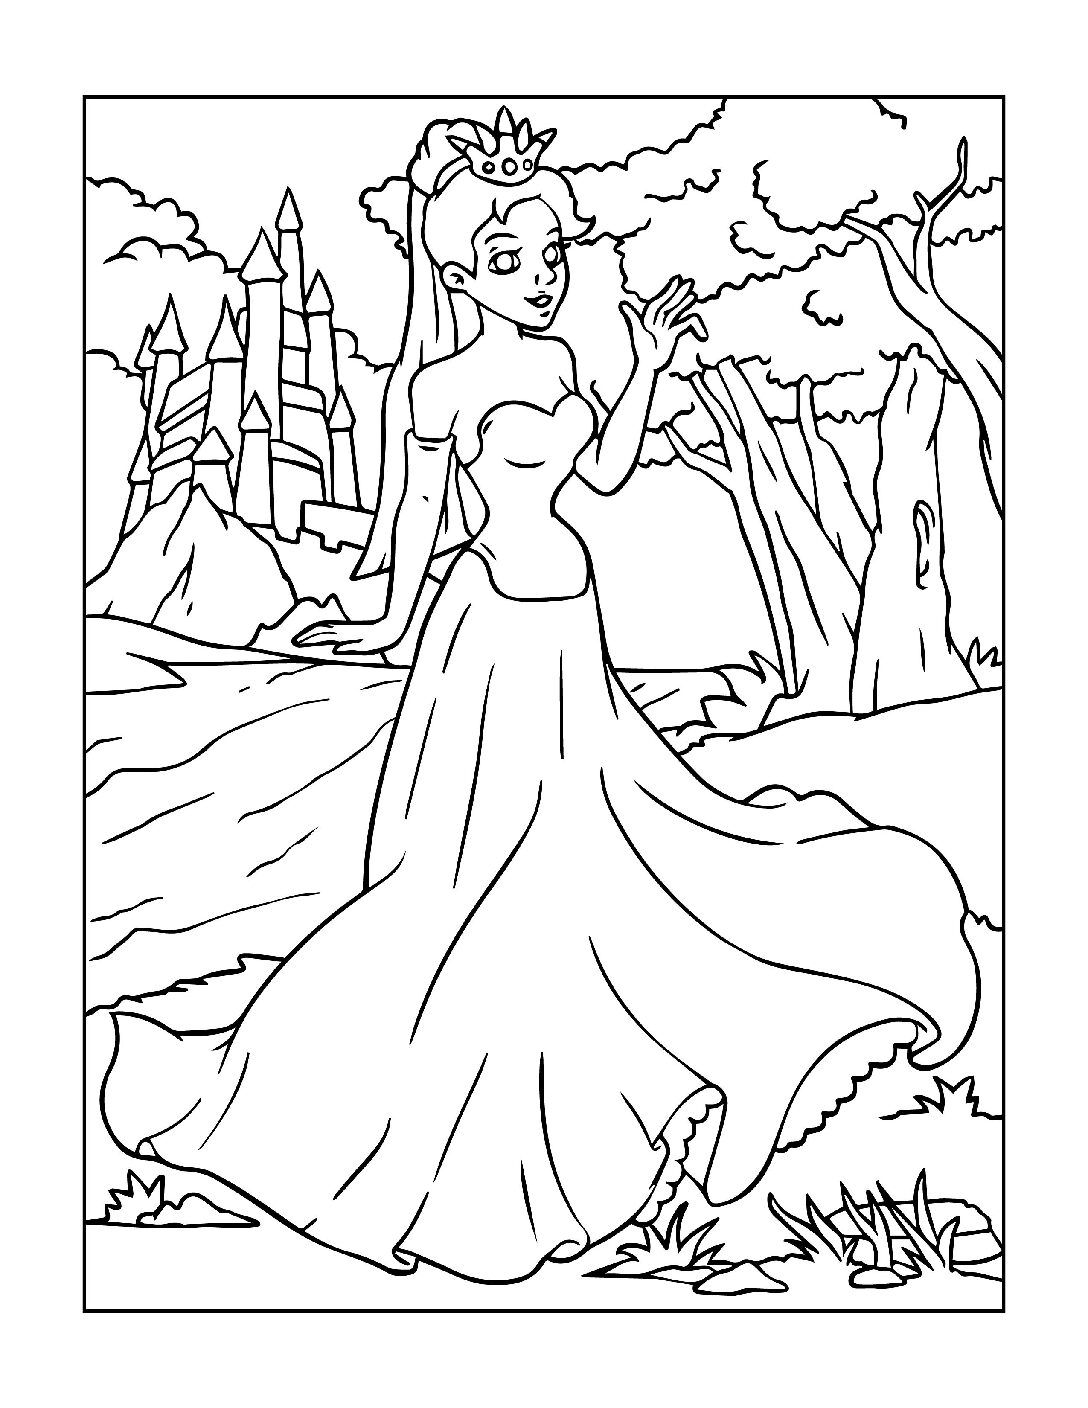 Coloring-Pages-Princess-16-01-pdf Free Printable Princesses Colouring Pages